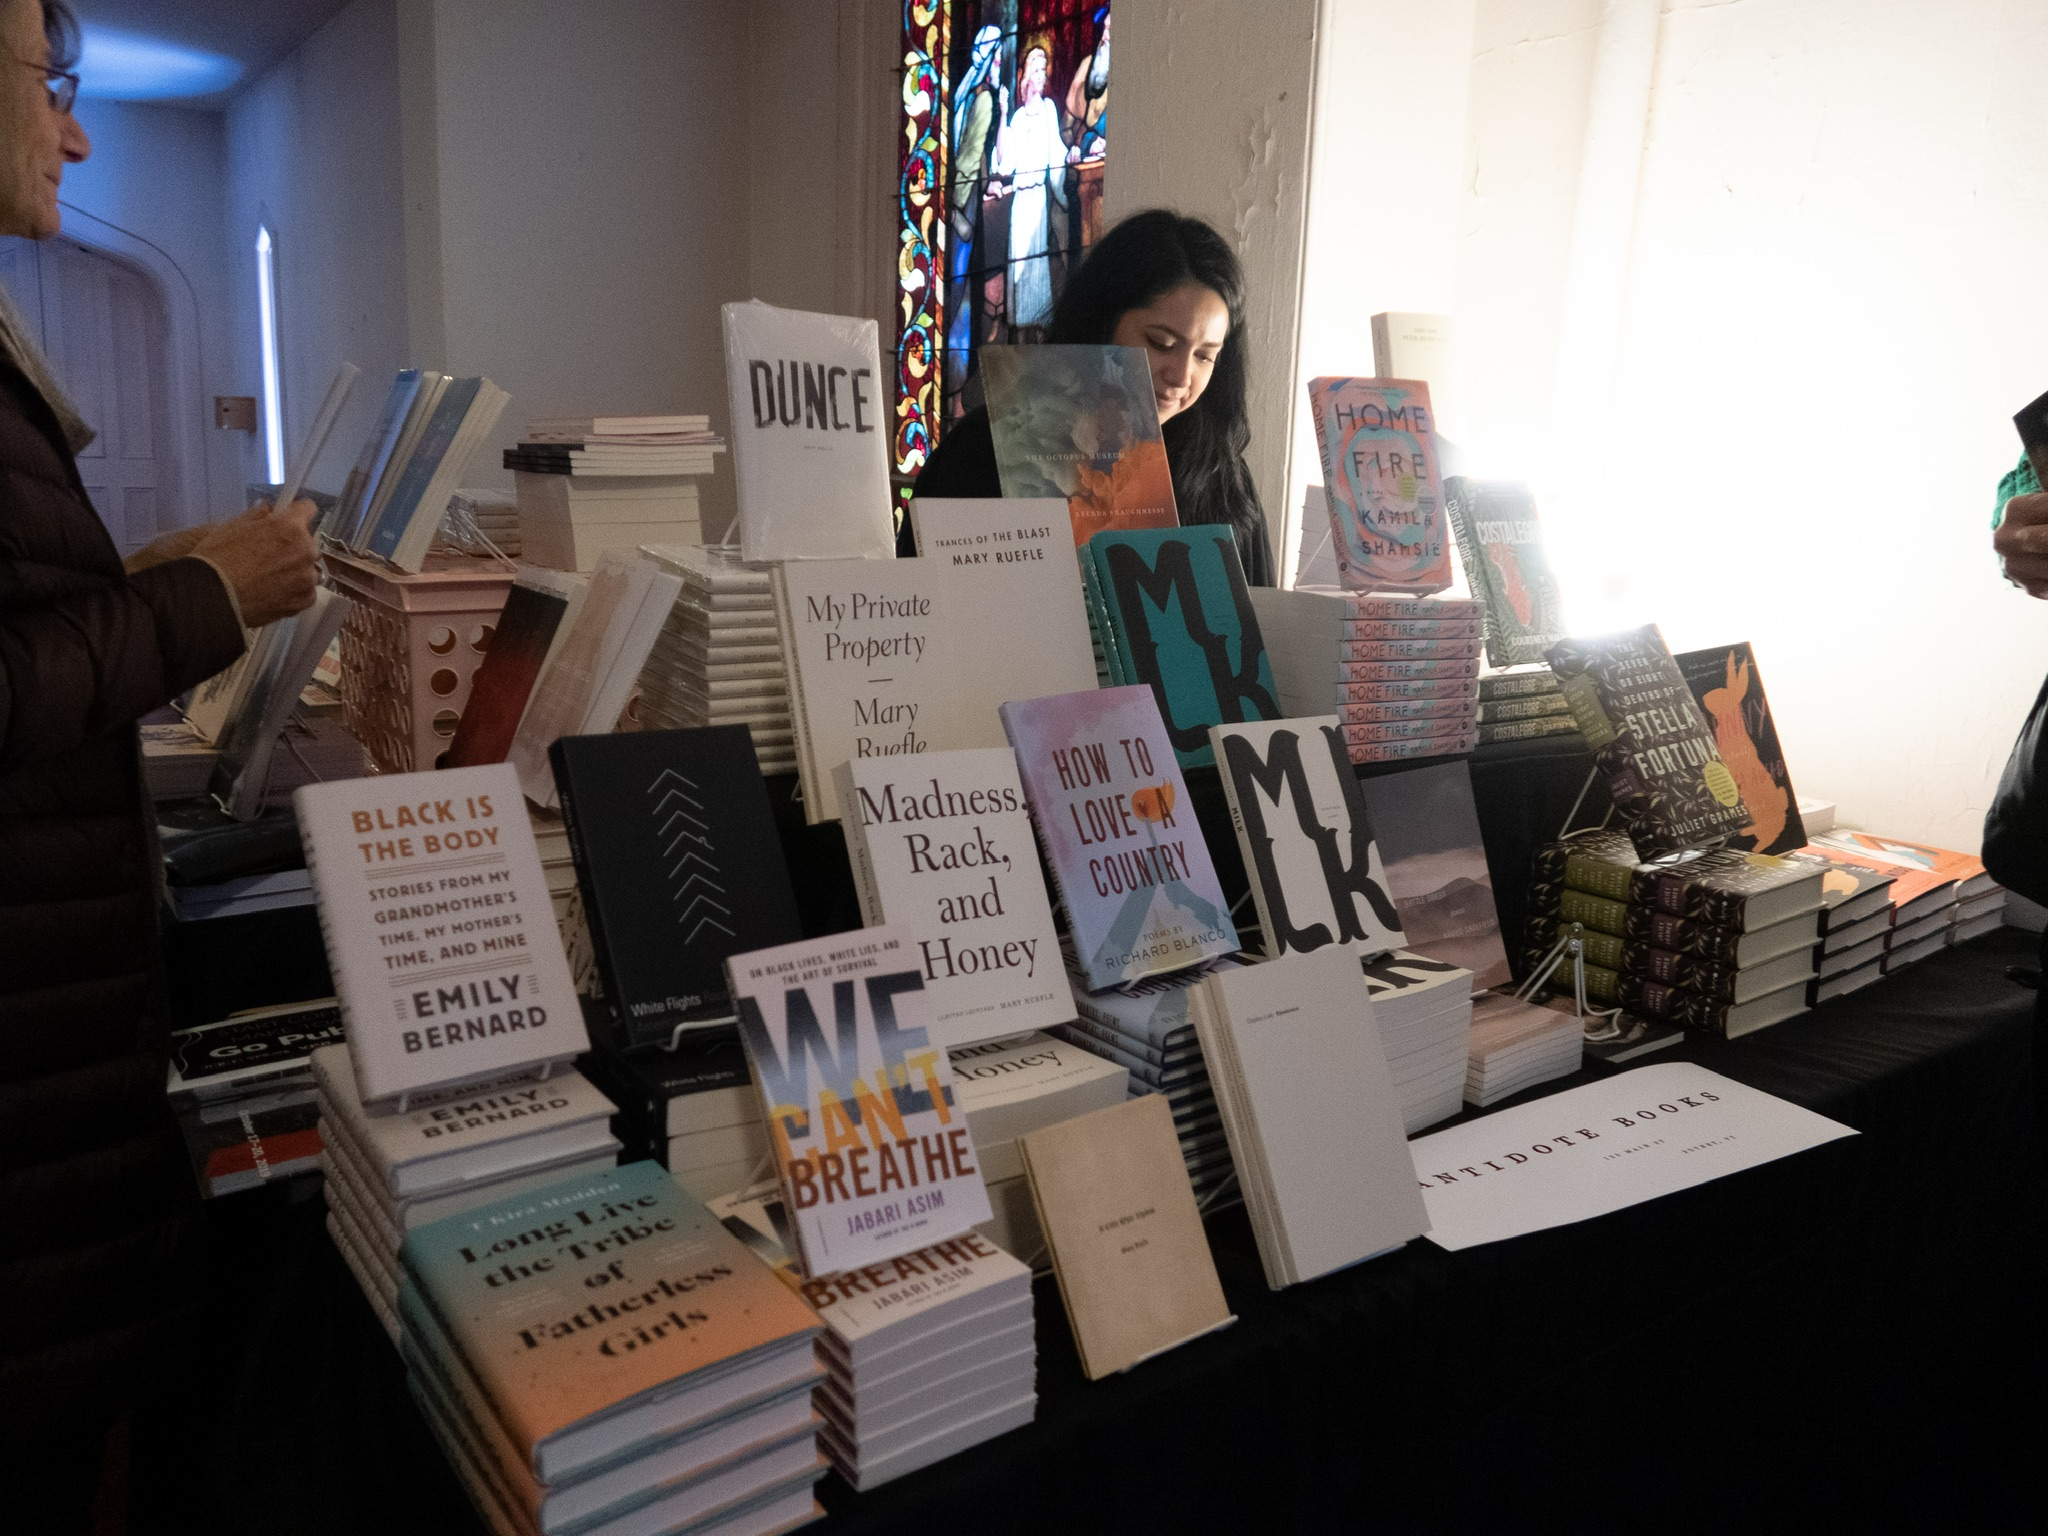 Books arranged on a table with shoppers browsing them at the 2019 Brattleboro Literary Festival